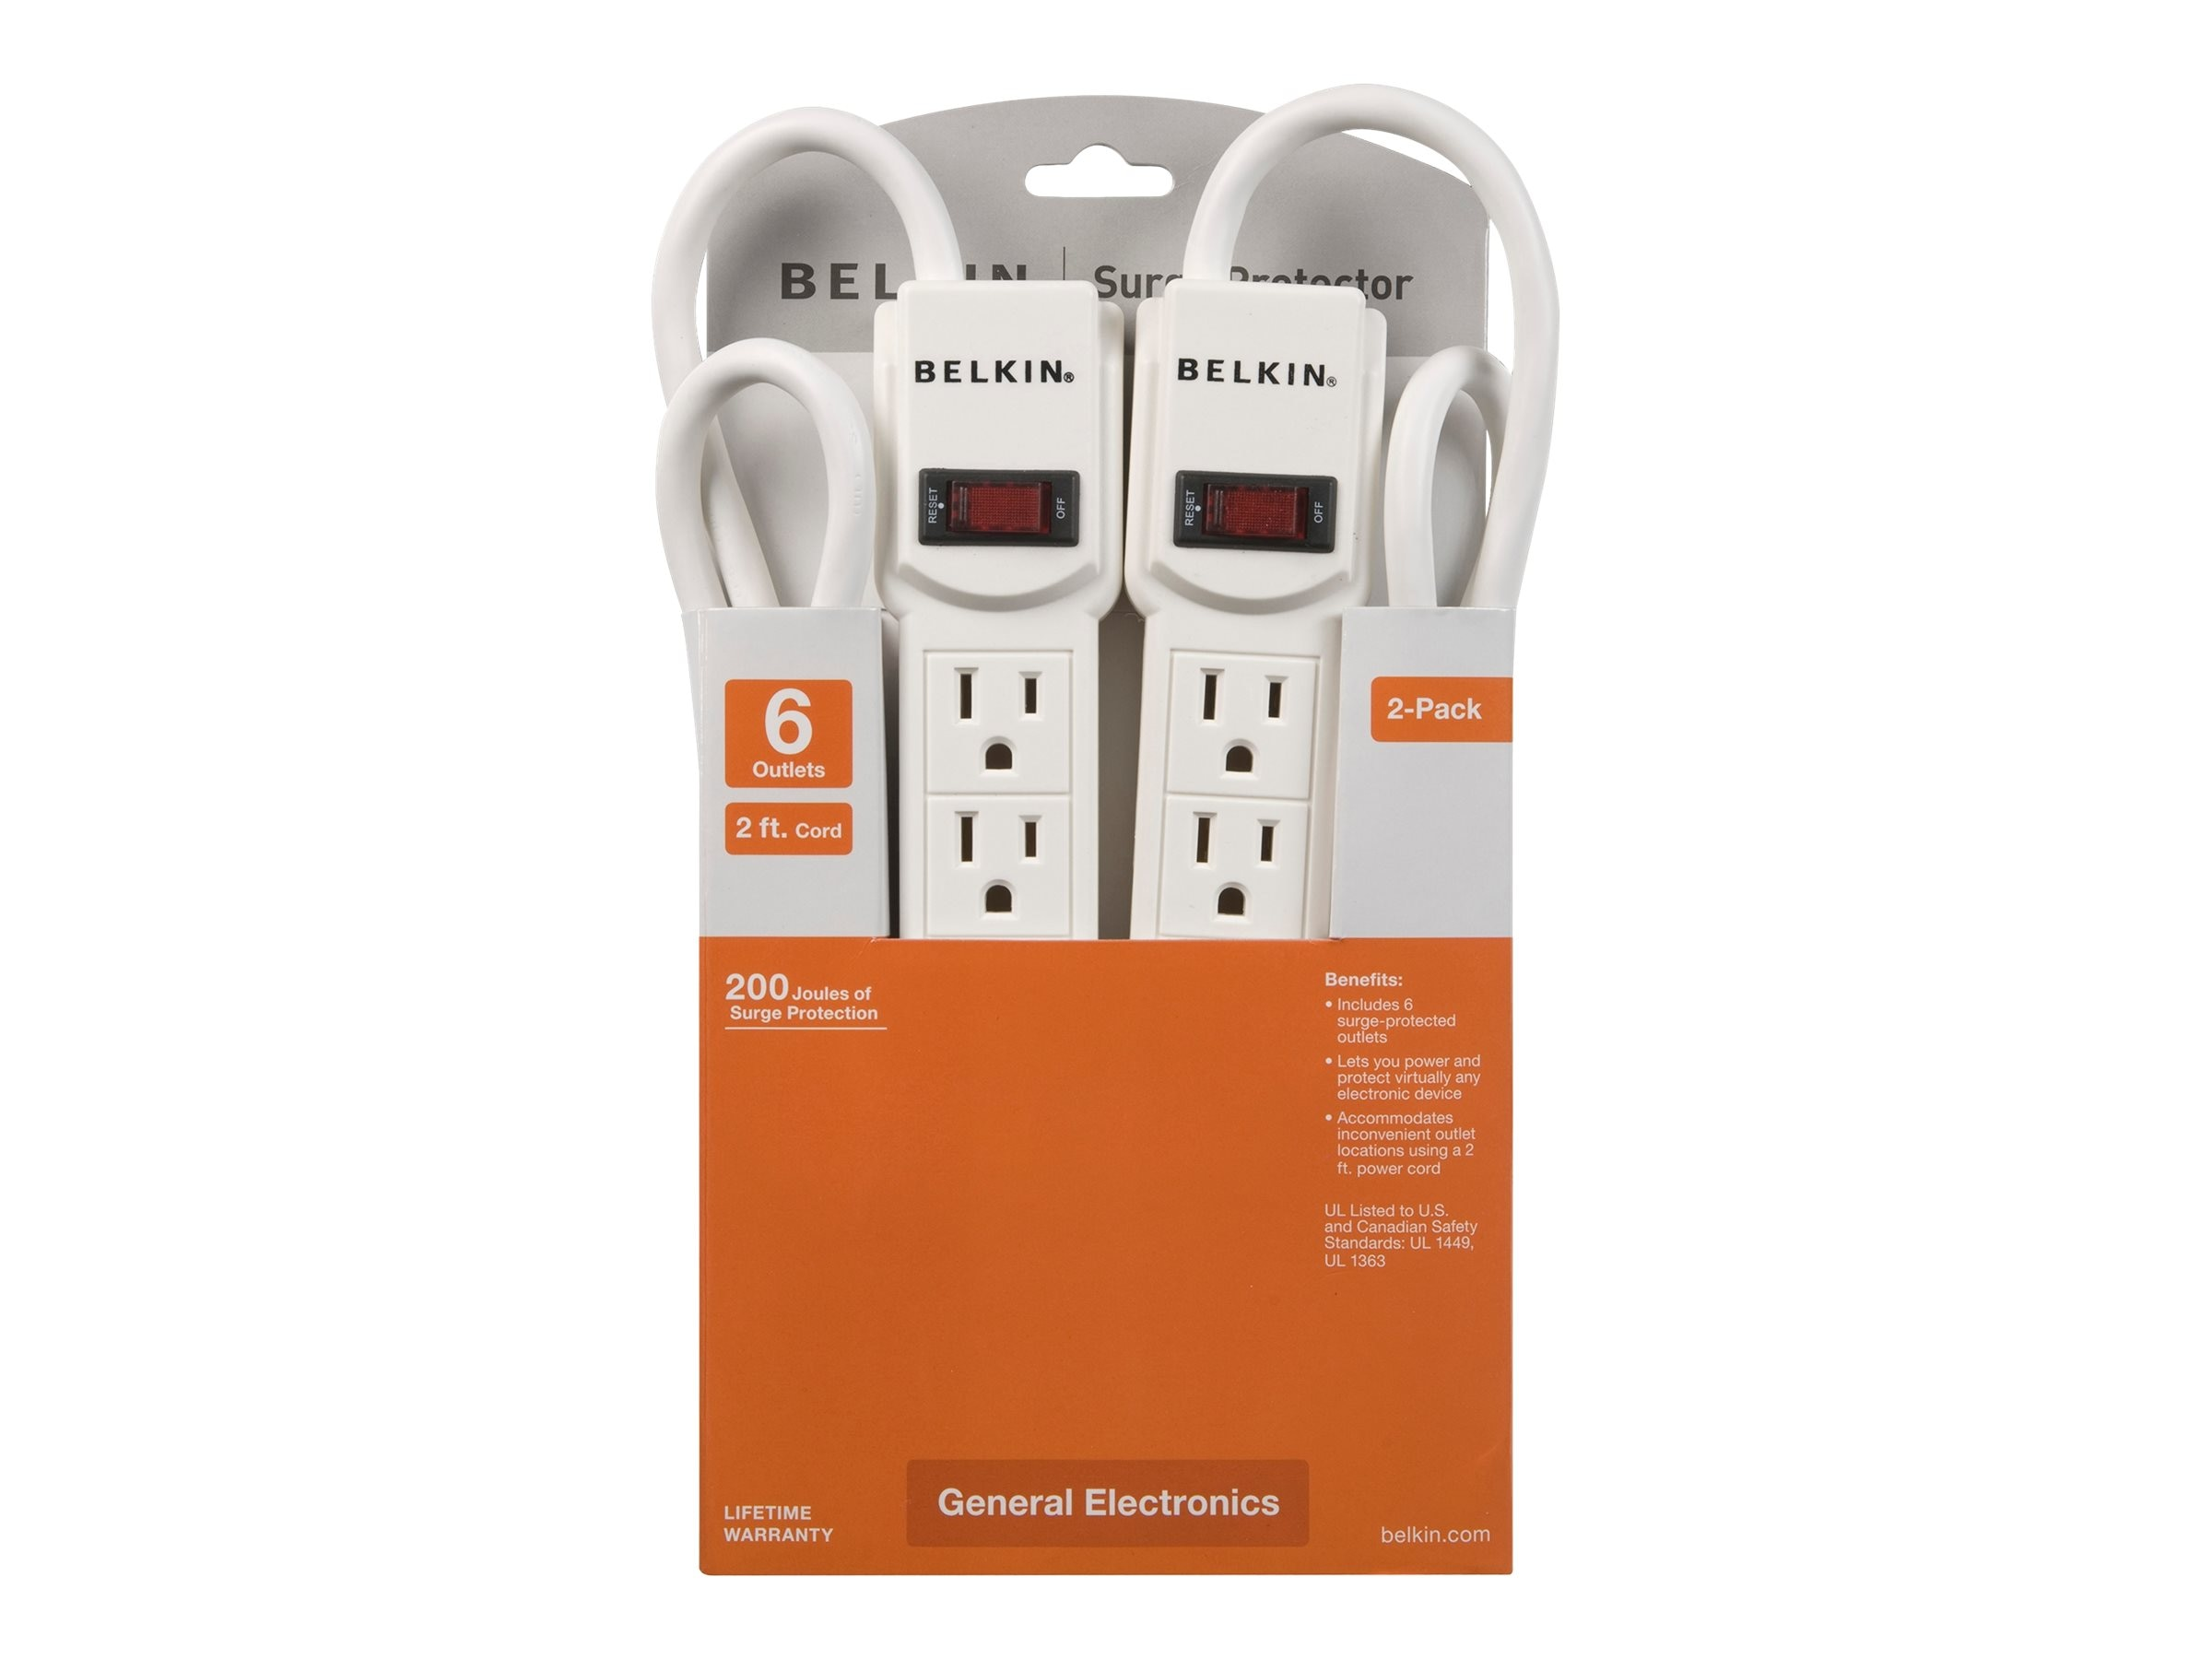 Belkin Surge Protector 6-Outlets 200 Joules 2ft Cord (2-pack), F5C048-2